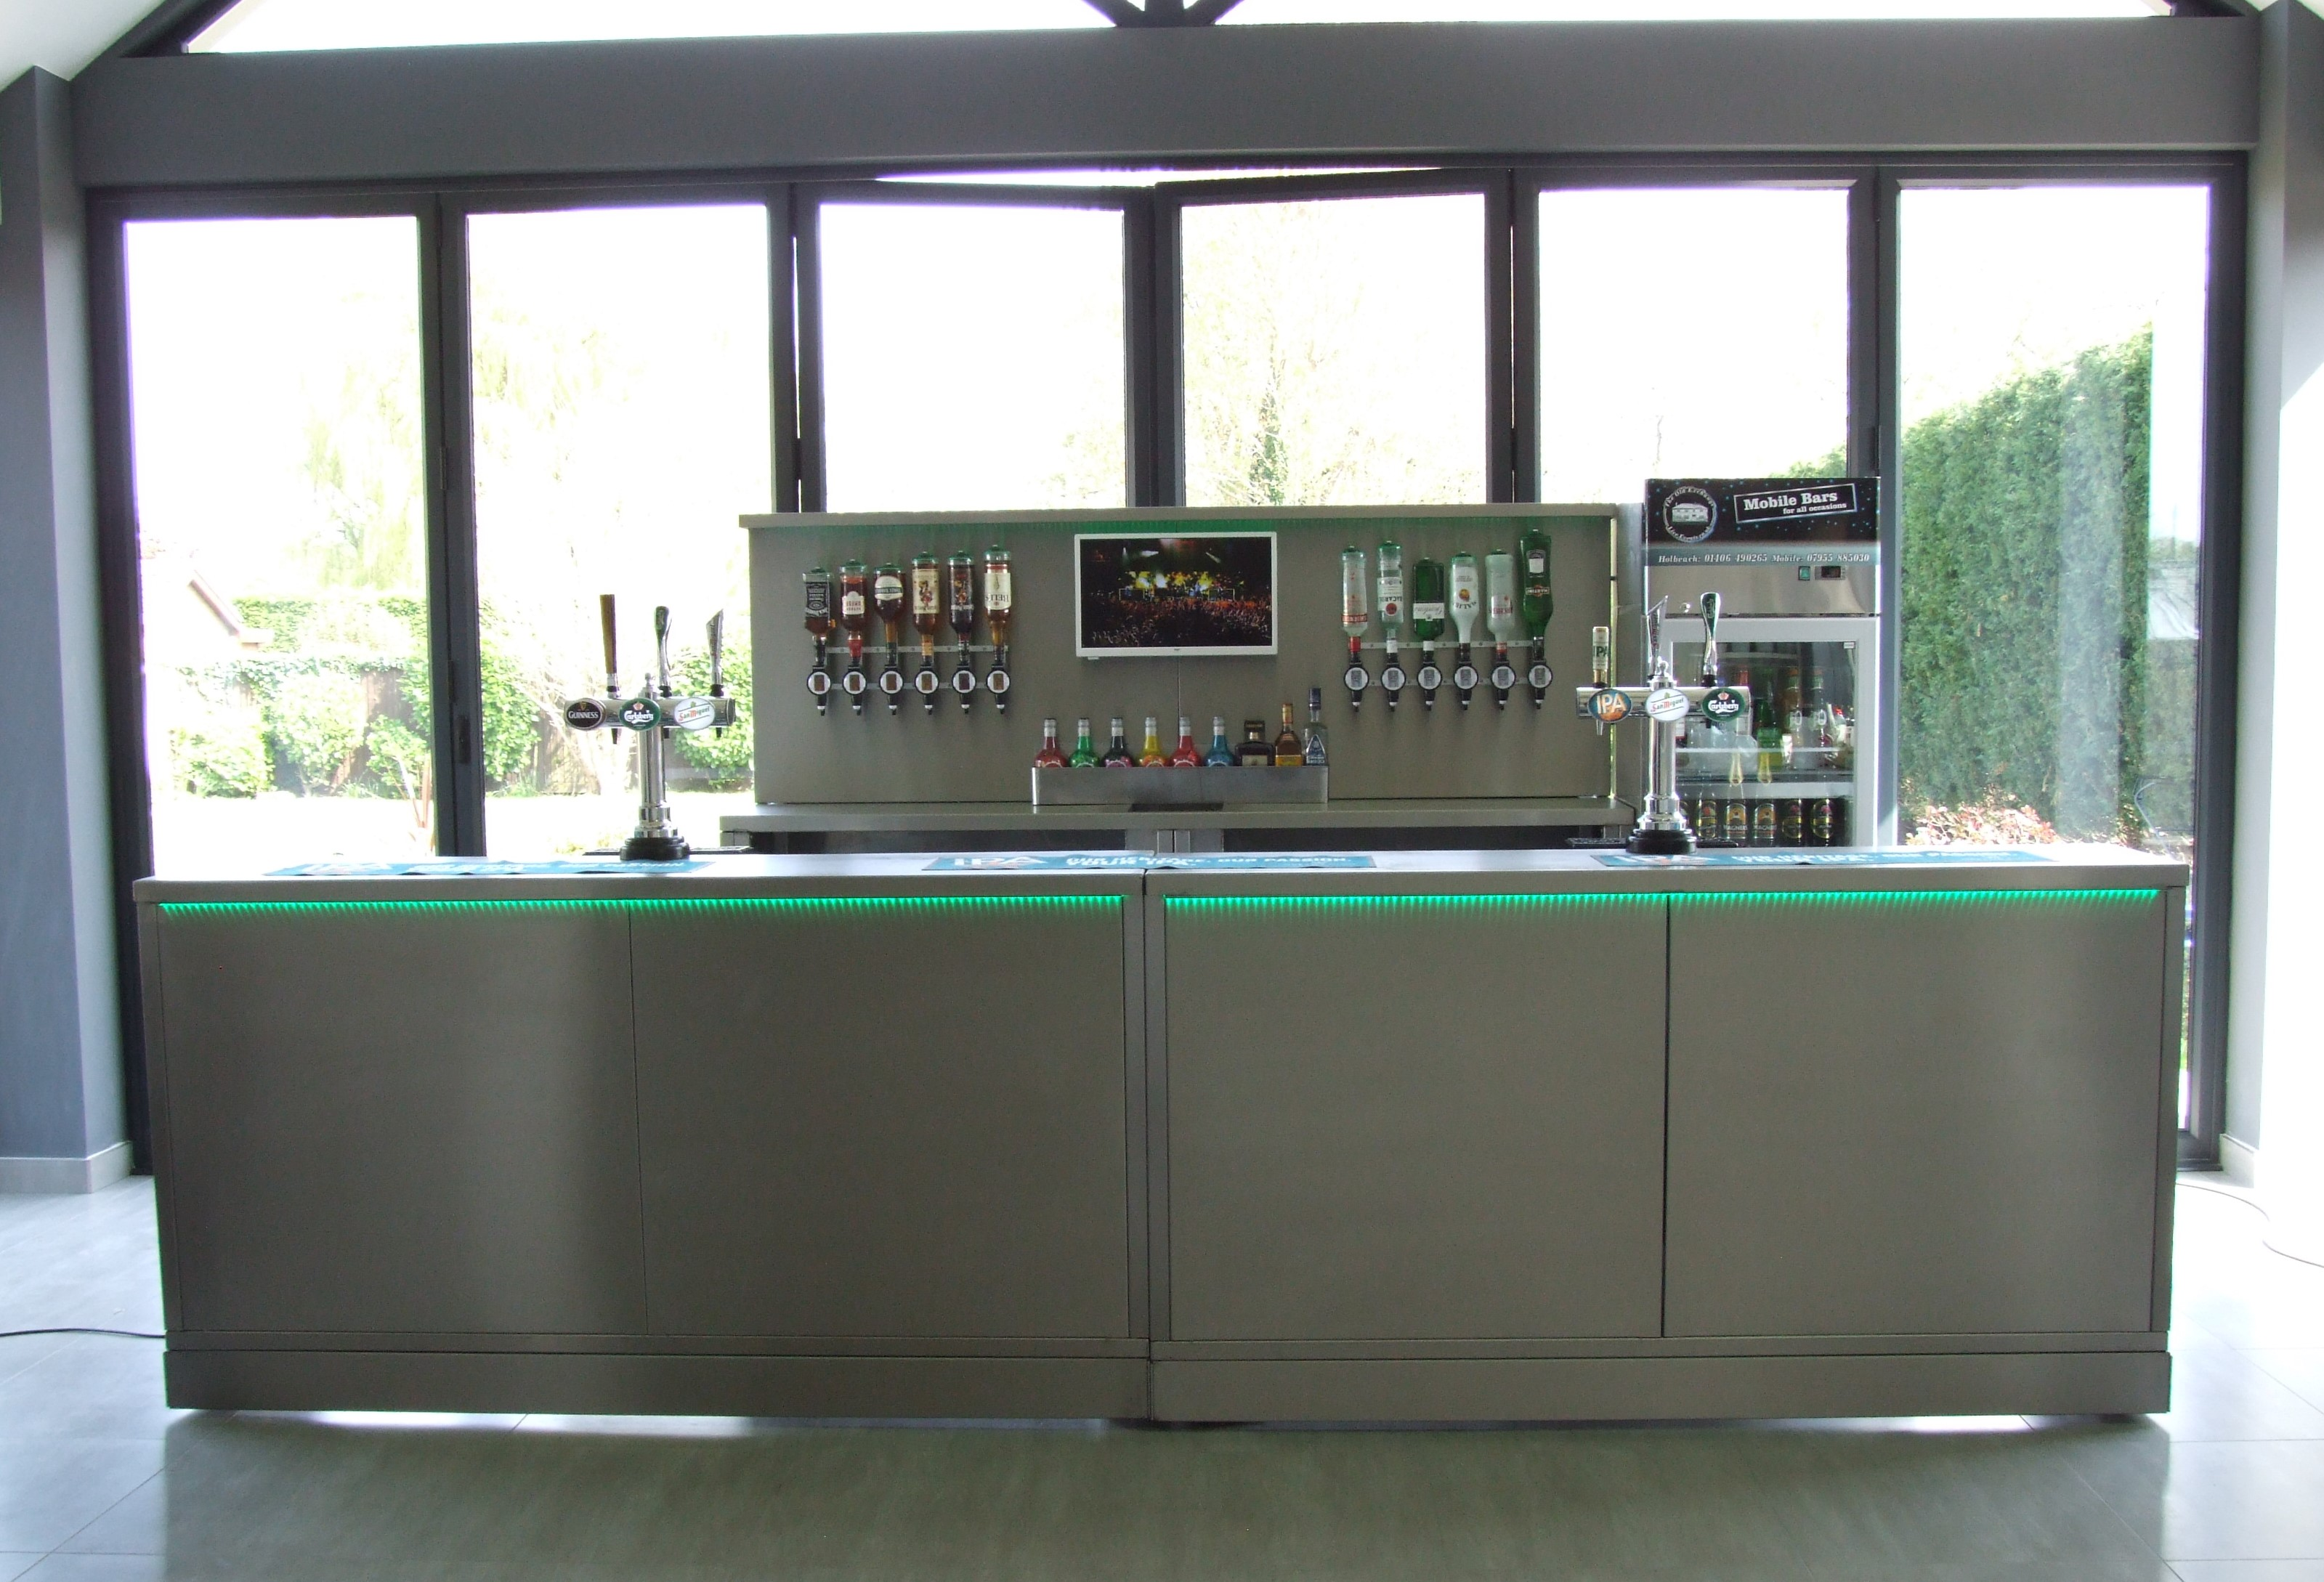 Bespoke Bar Units Manufactured For A Local Family Run Business